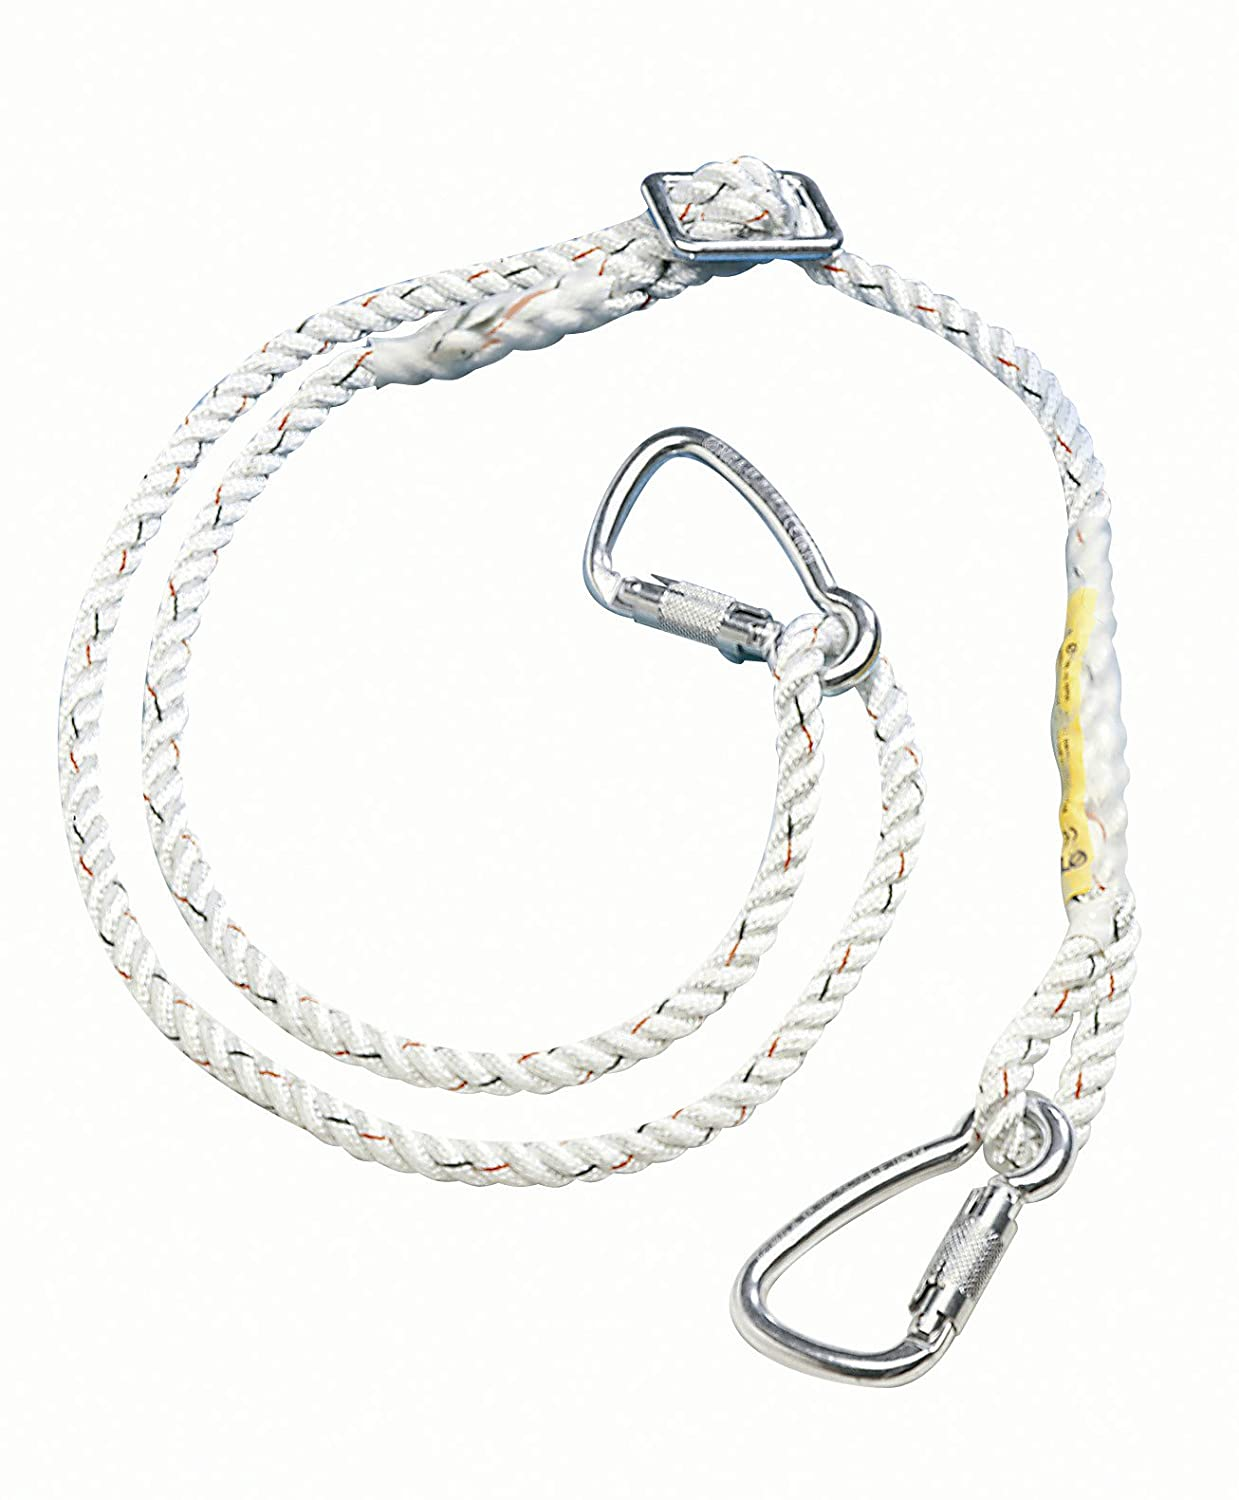 Honeywell 1008285 Miller Fpl1200 En358 Lanyard, 12X180 Honeywell Safety